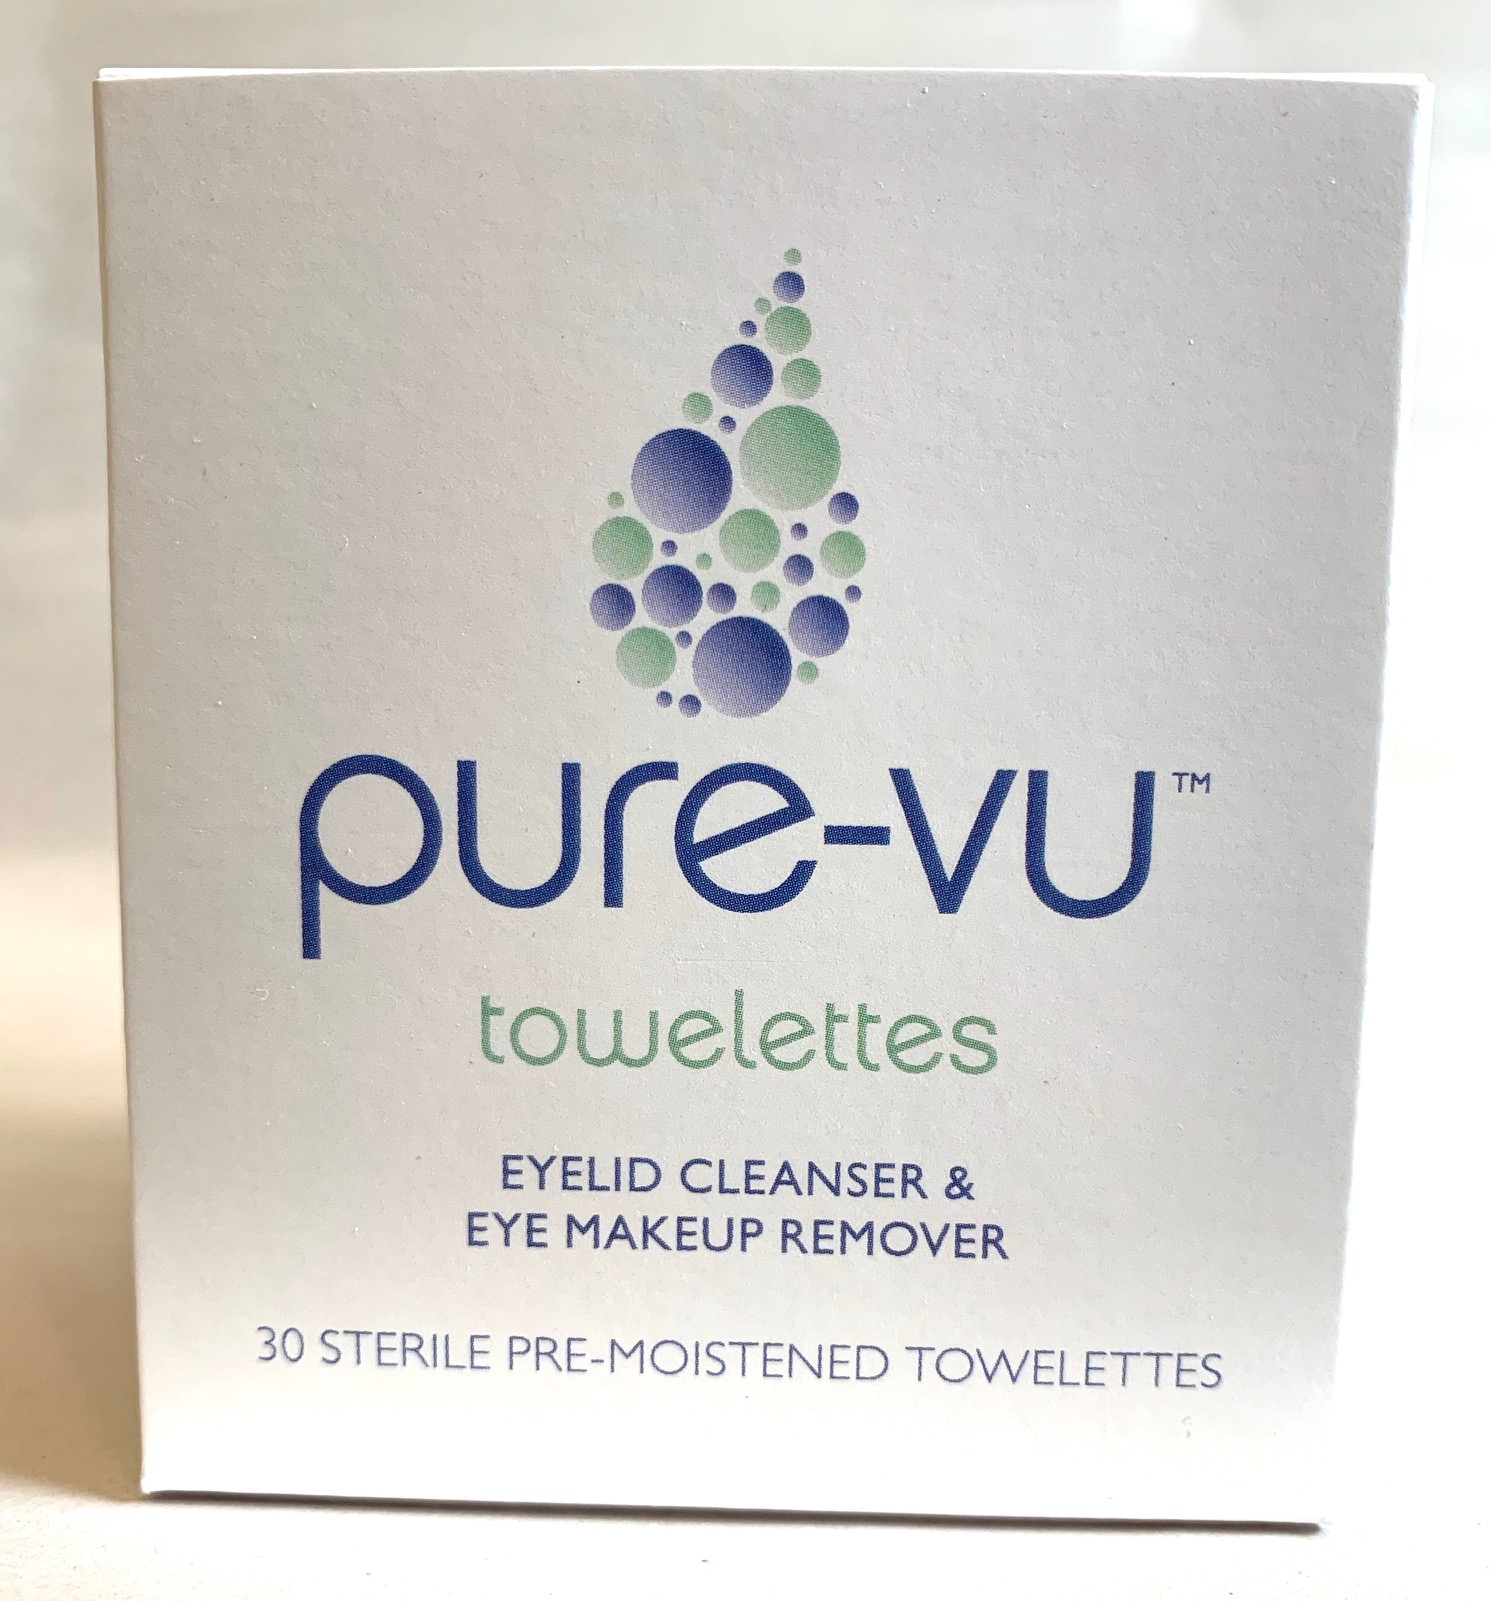 pure-vu towelettes